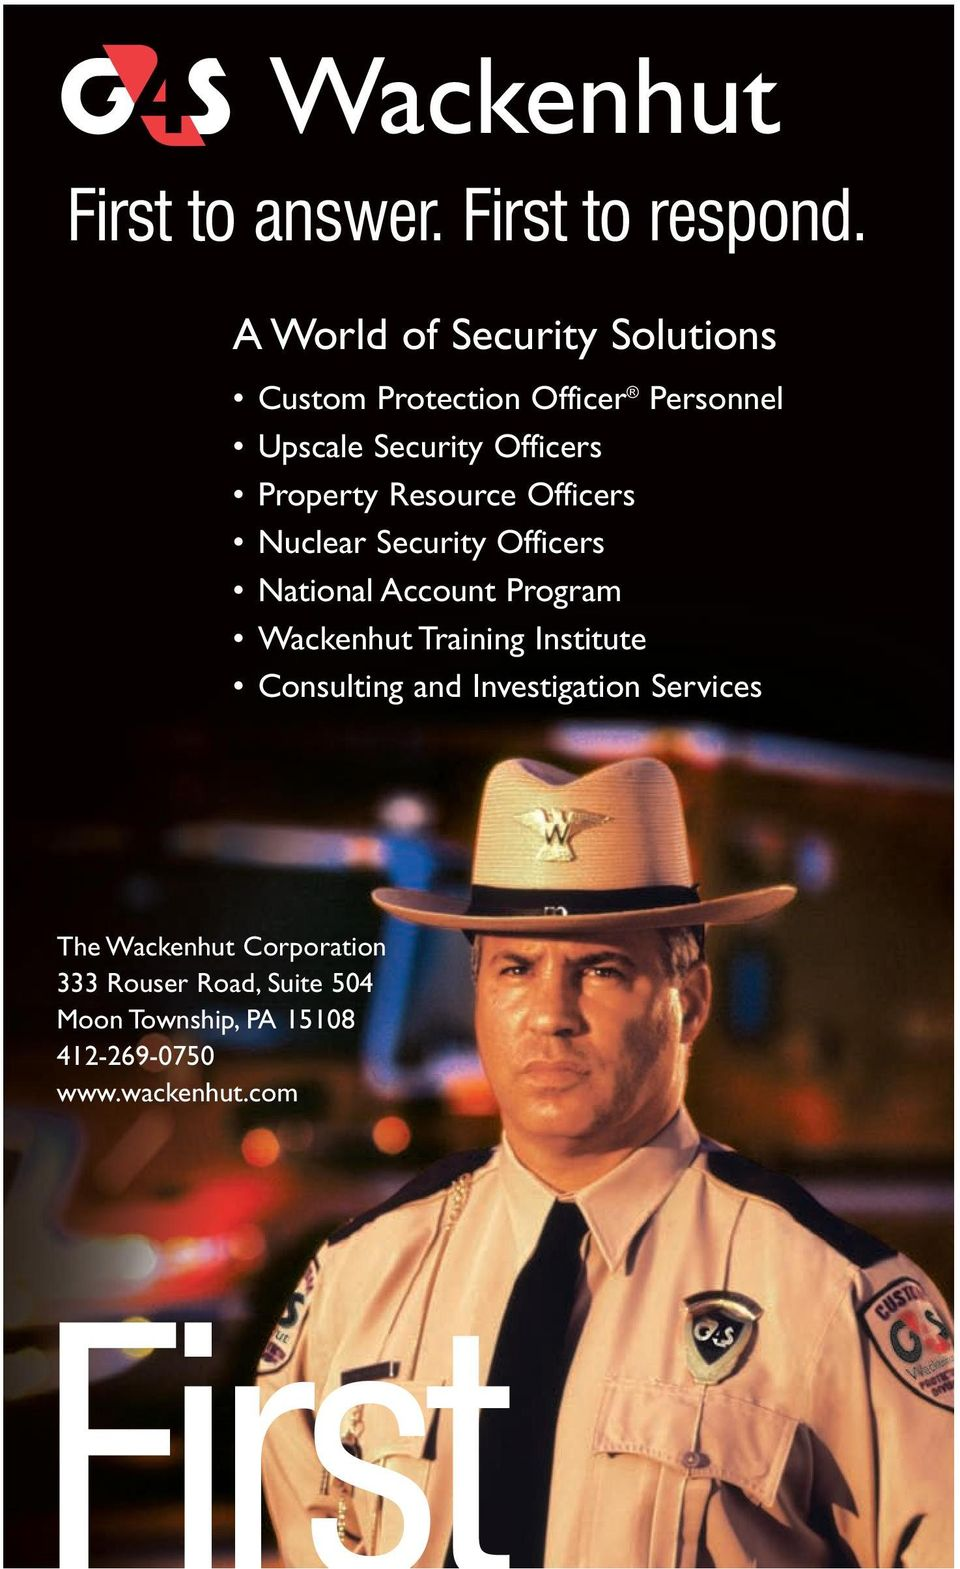 Property Resource Officers Nuclear Security Officers National Account Program Wackenhut Training